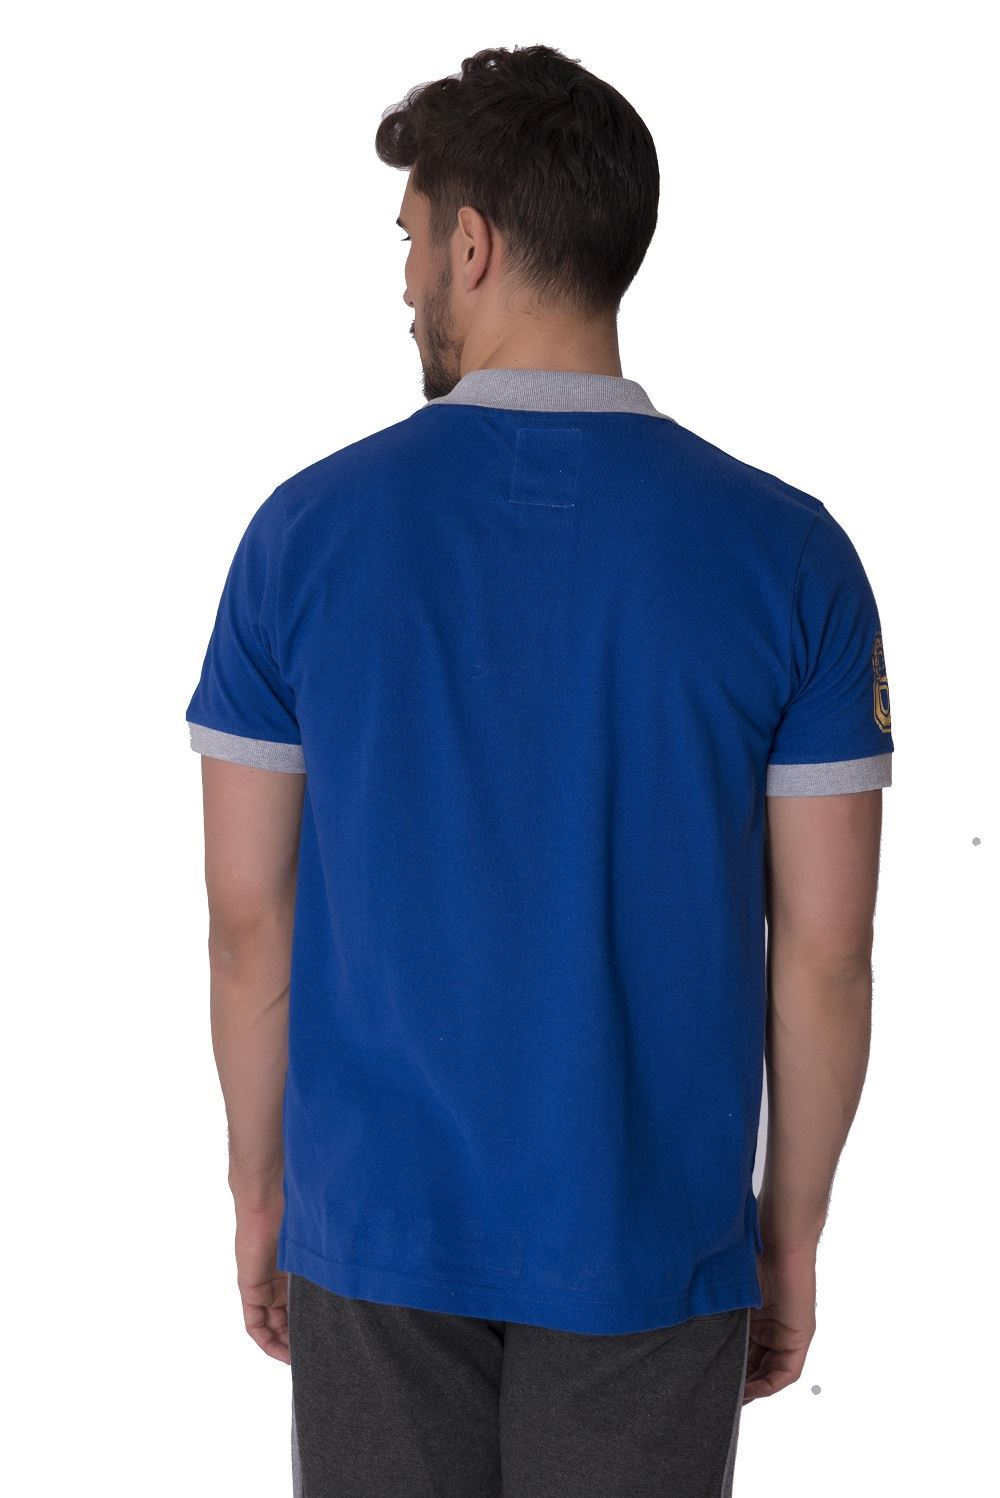 Find great deals on eBay for mens short sleeve collared shirt. Shop with confidence.